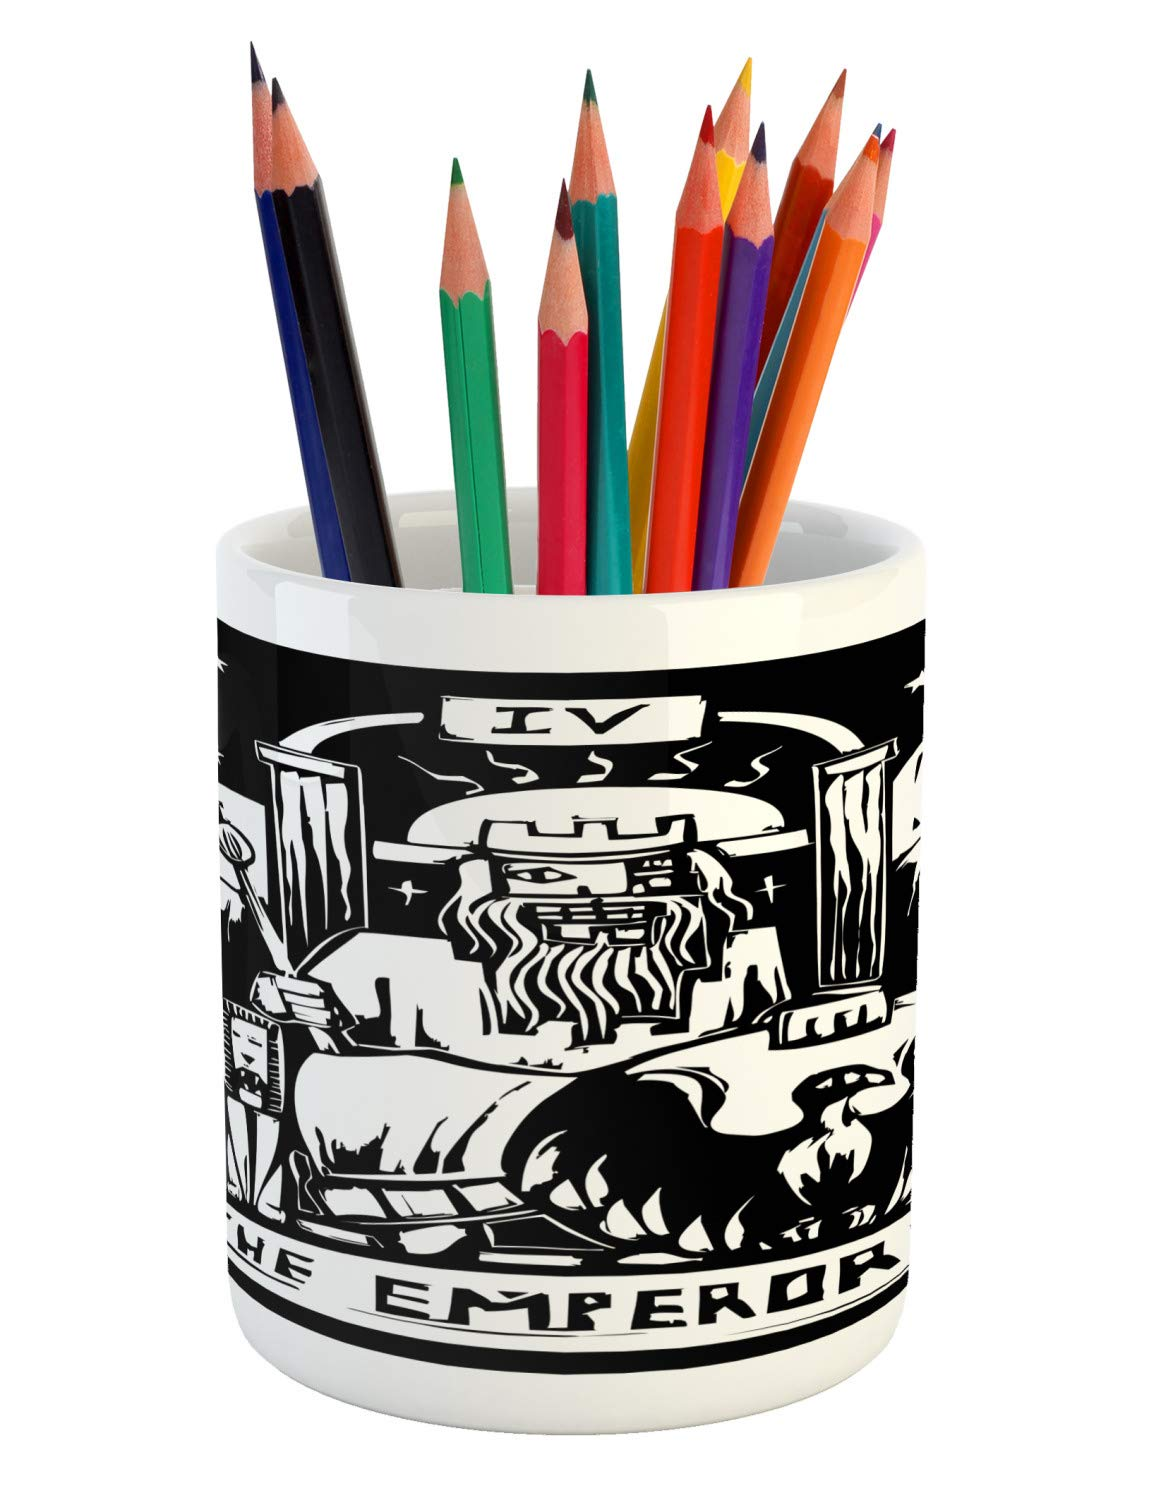 Ambesonne Tarot Pencil Pen Holder, Tarot Card for The Emperor Woodcut Style Illustration Monochromatic Artwork, Printed Ceramic Pencil Pen Holder for Desk Office Accessory, Black and White